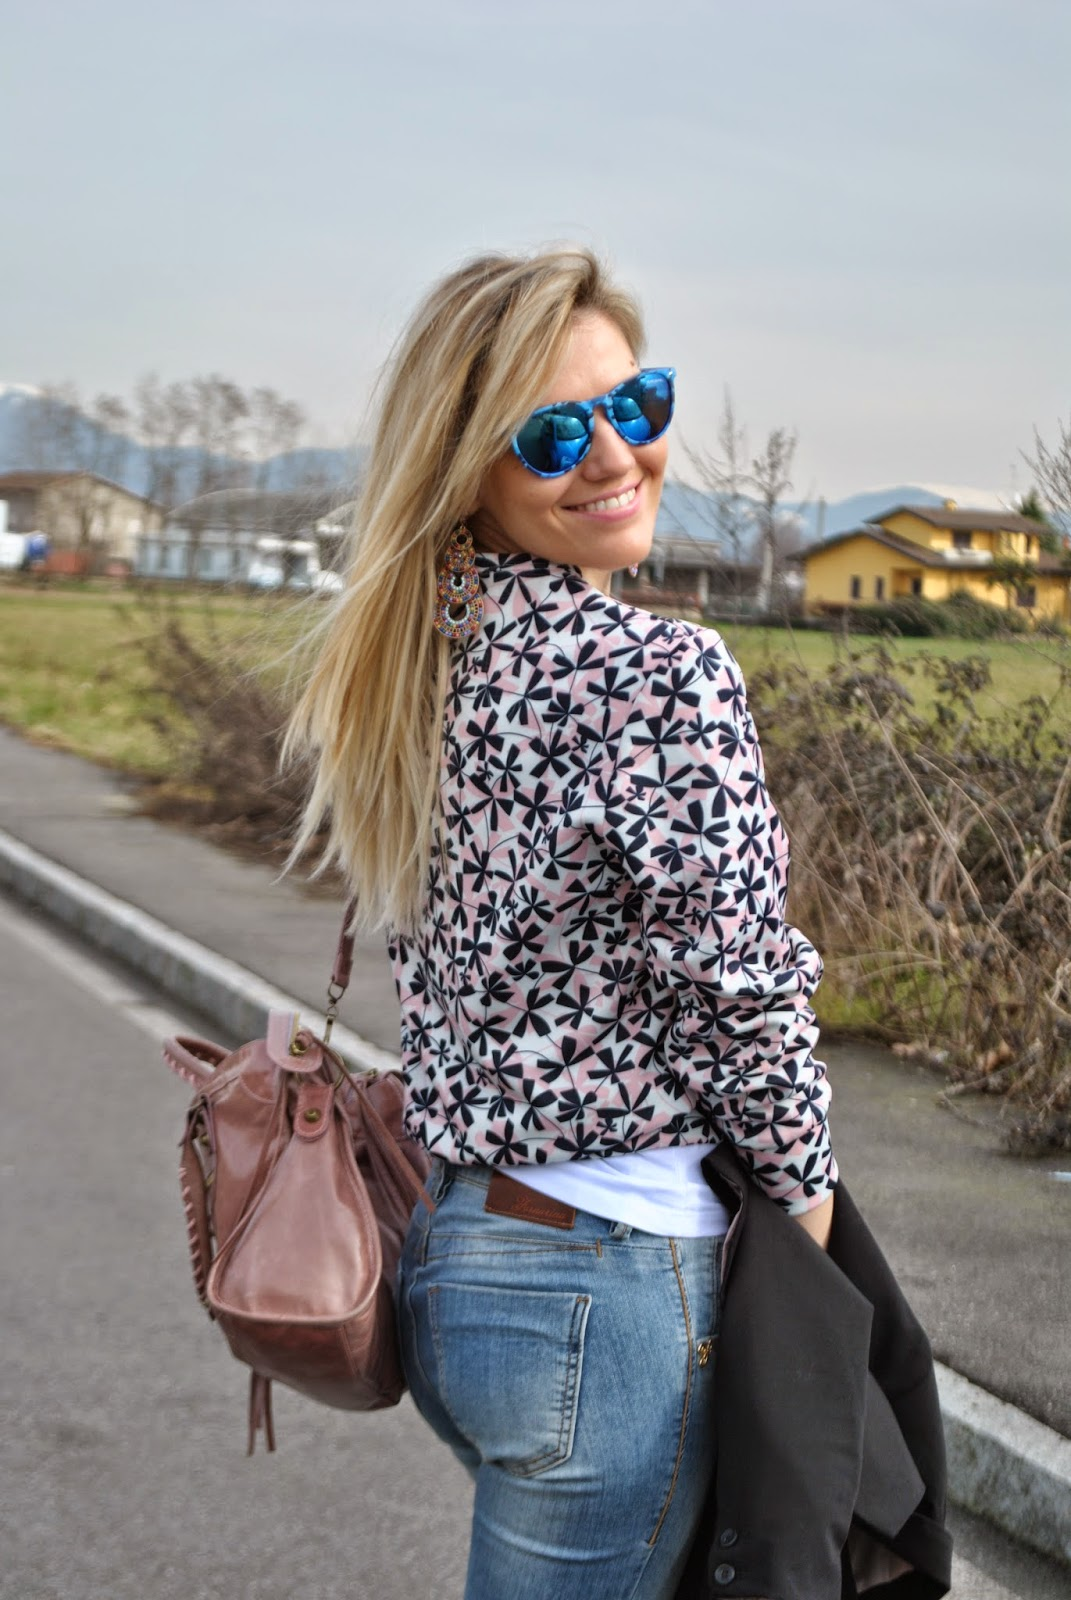 outfit casual invernali outfit jeans e tacchi outfit jeans e felpa come abbinare la felpa abbinamenti felpa come abbinare jeans e tacchi abbinamenti jeans e tacchi outfit febbraio 2015 mariafelicia magno colorblock by felym mariafelicia magno fashion blogger blog di moda italiani blogger italiane di moda ragazze bionde blogger italiane jeans and heels sweatshirt and jeans how to wear jeans and heels winter outfits fashion bloggers italy italian fashion bloggers girls blonde girls skinny jeans stivali buffalo buffalo boots majique london earrings majique orecchini anello stile ysl majique